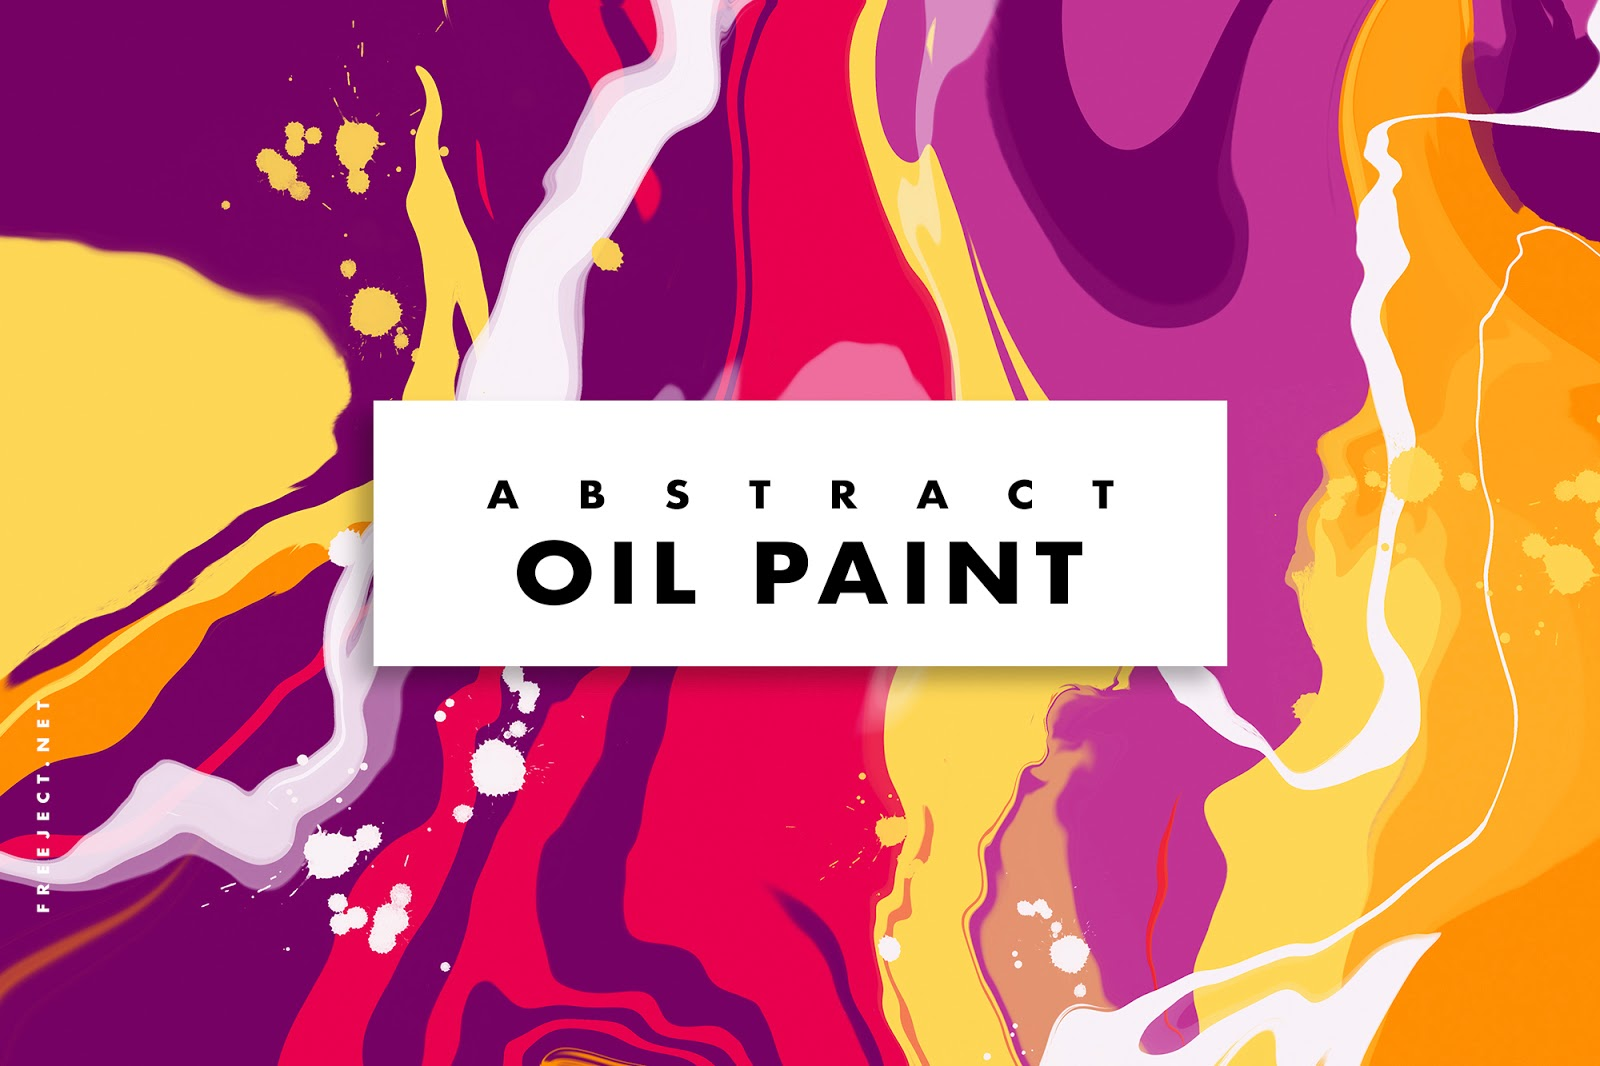 Free Download Abstract Oil Paint Ipad Pro 2018 Background